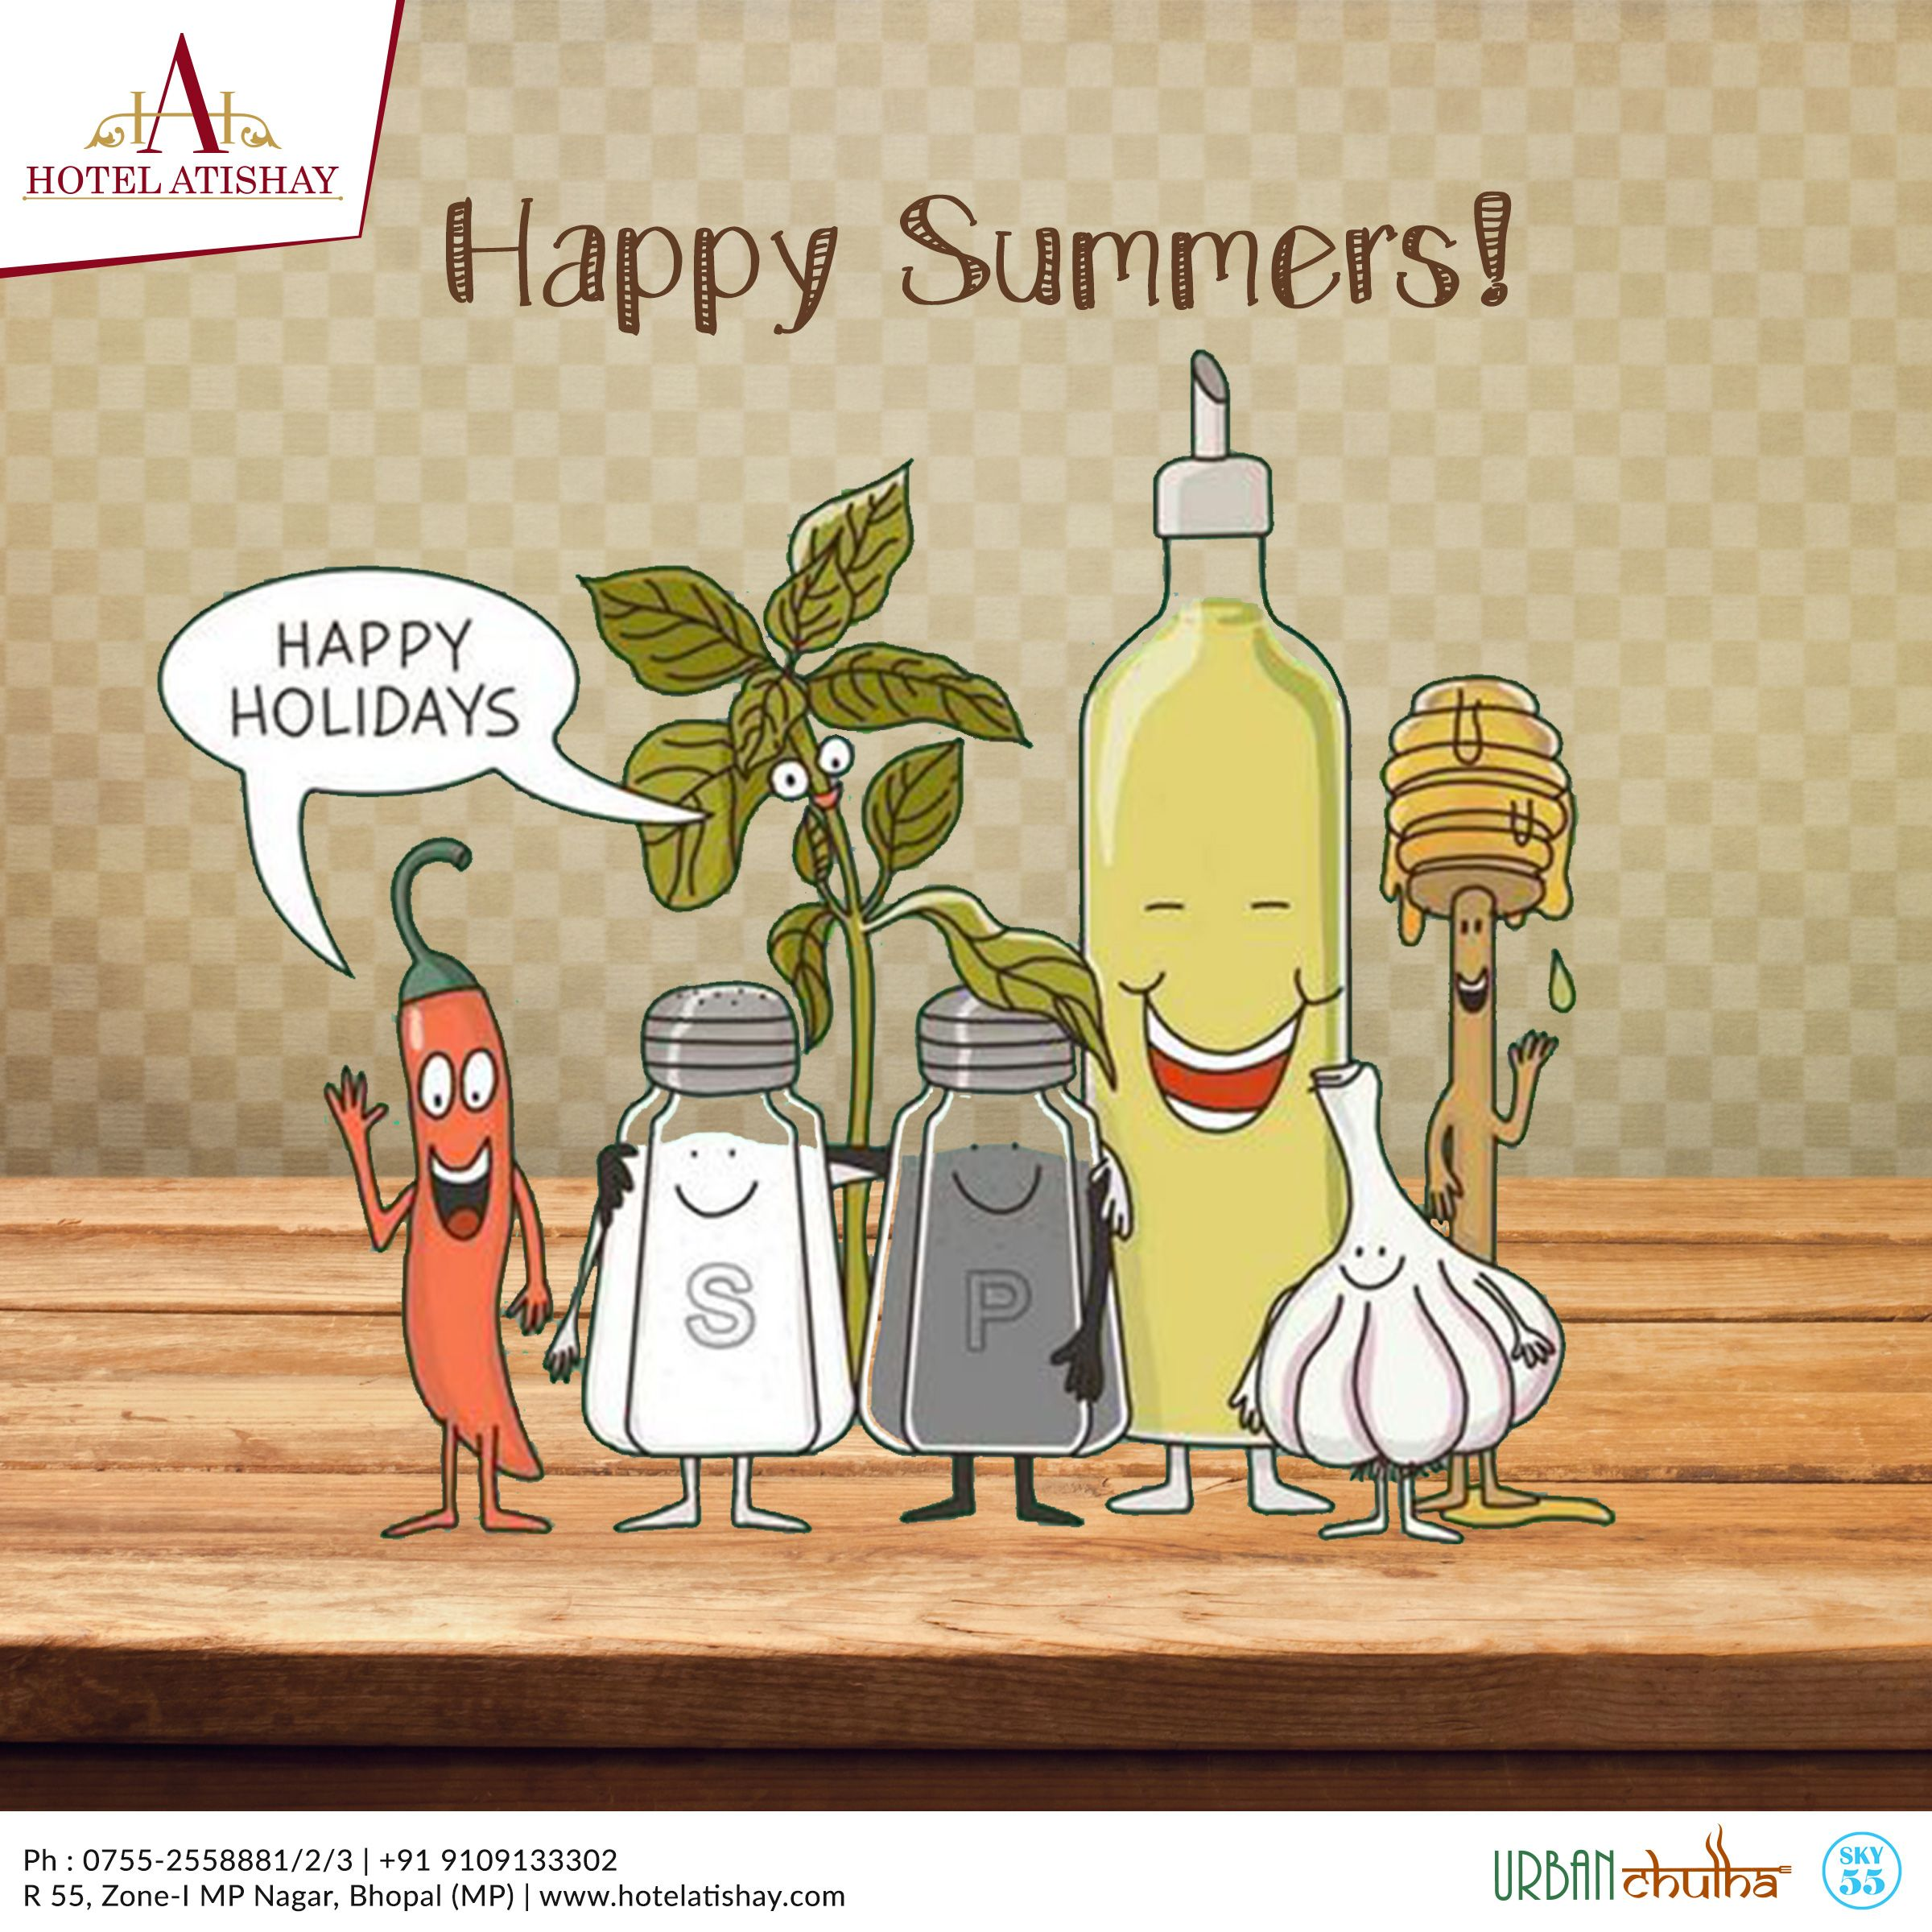 Summer state of mind make it a summer to remember at hotel atishay summer state of mind make it a summer to remember at hotel atishay seasons m4hsunfo